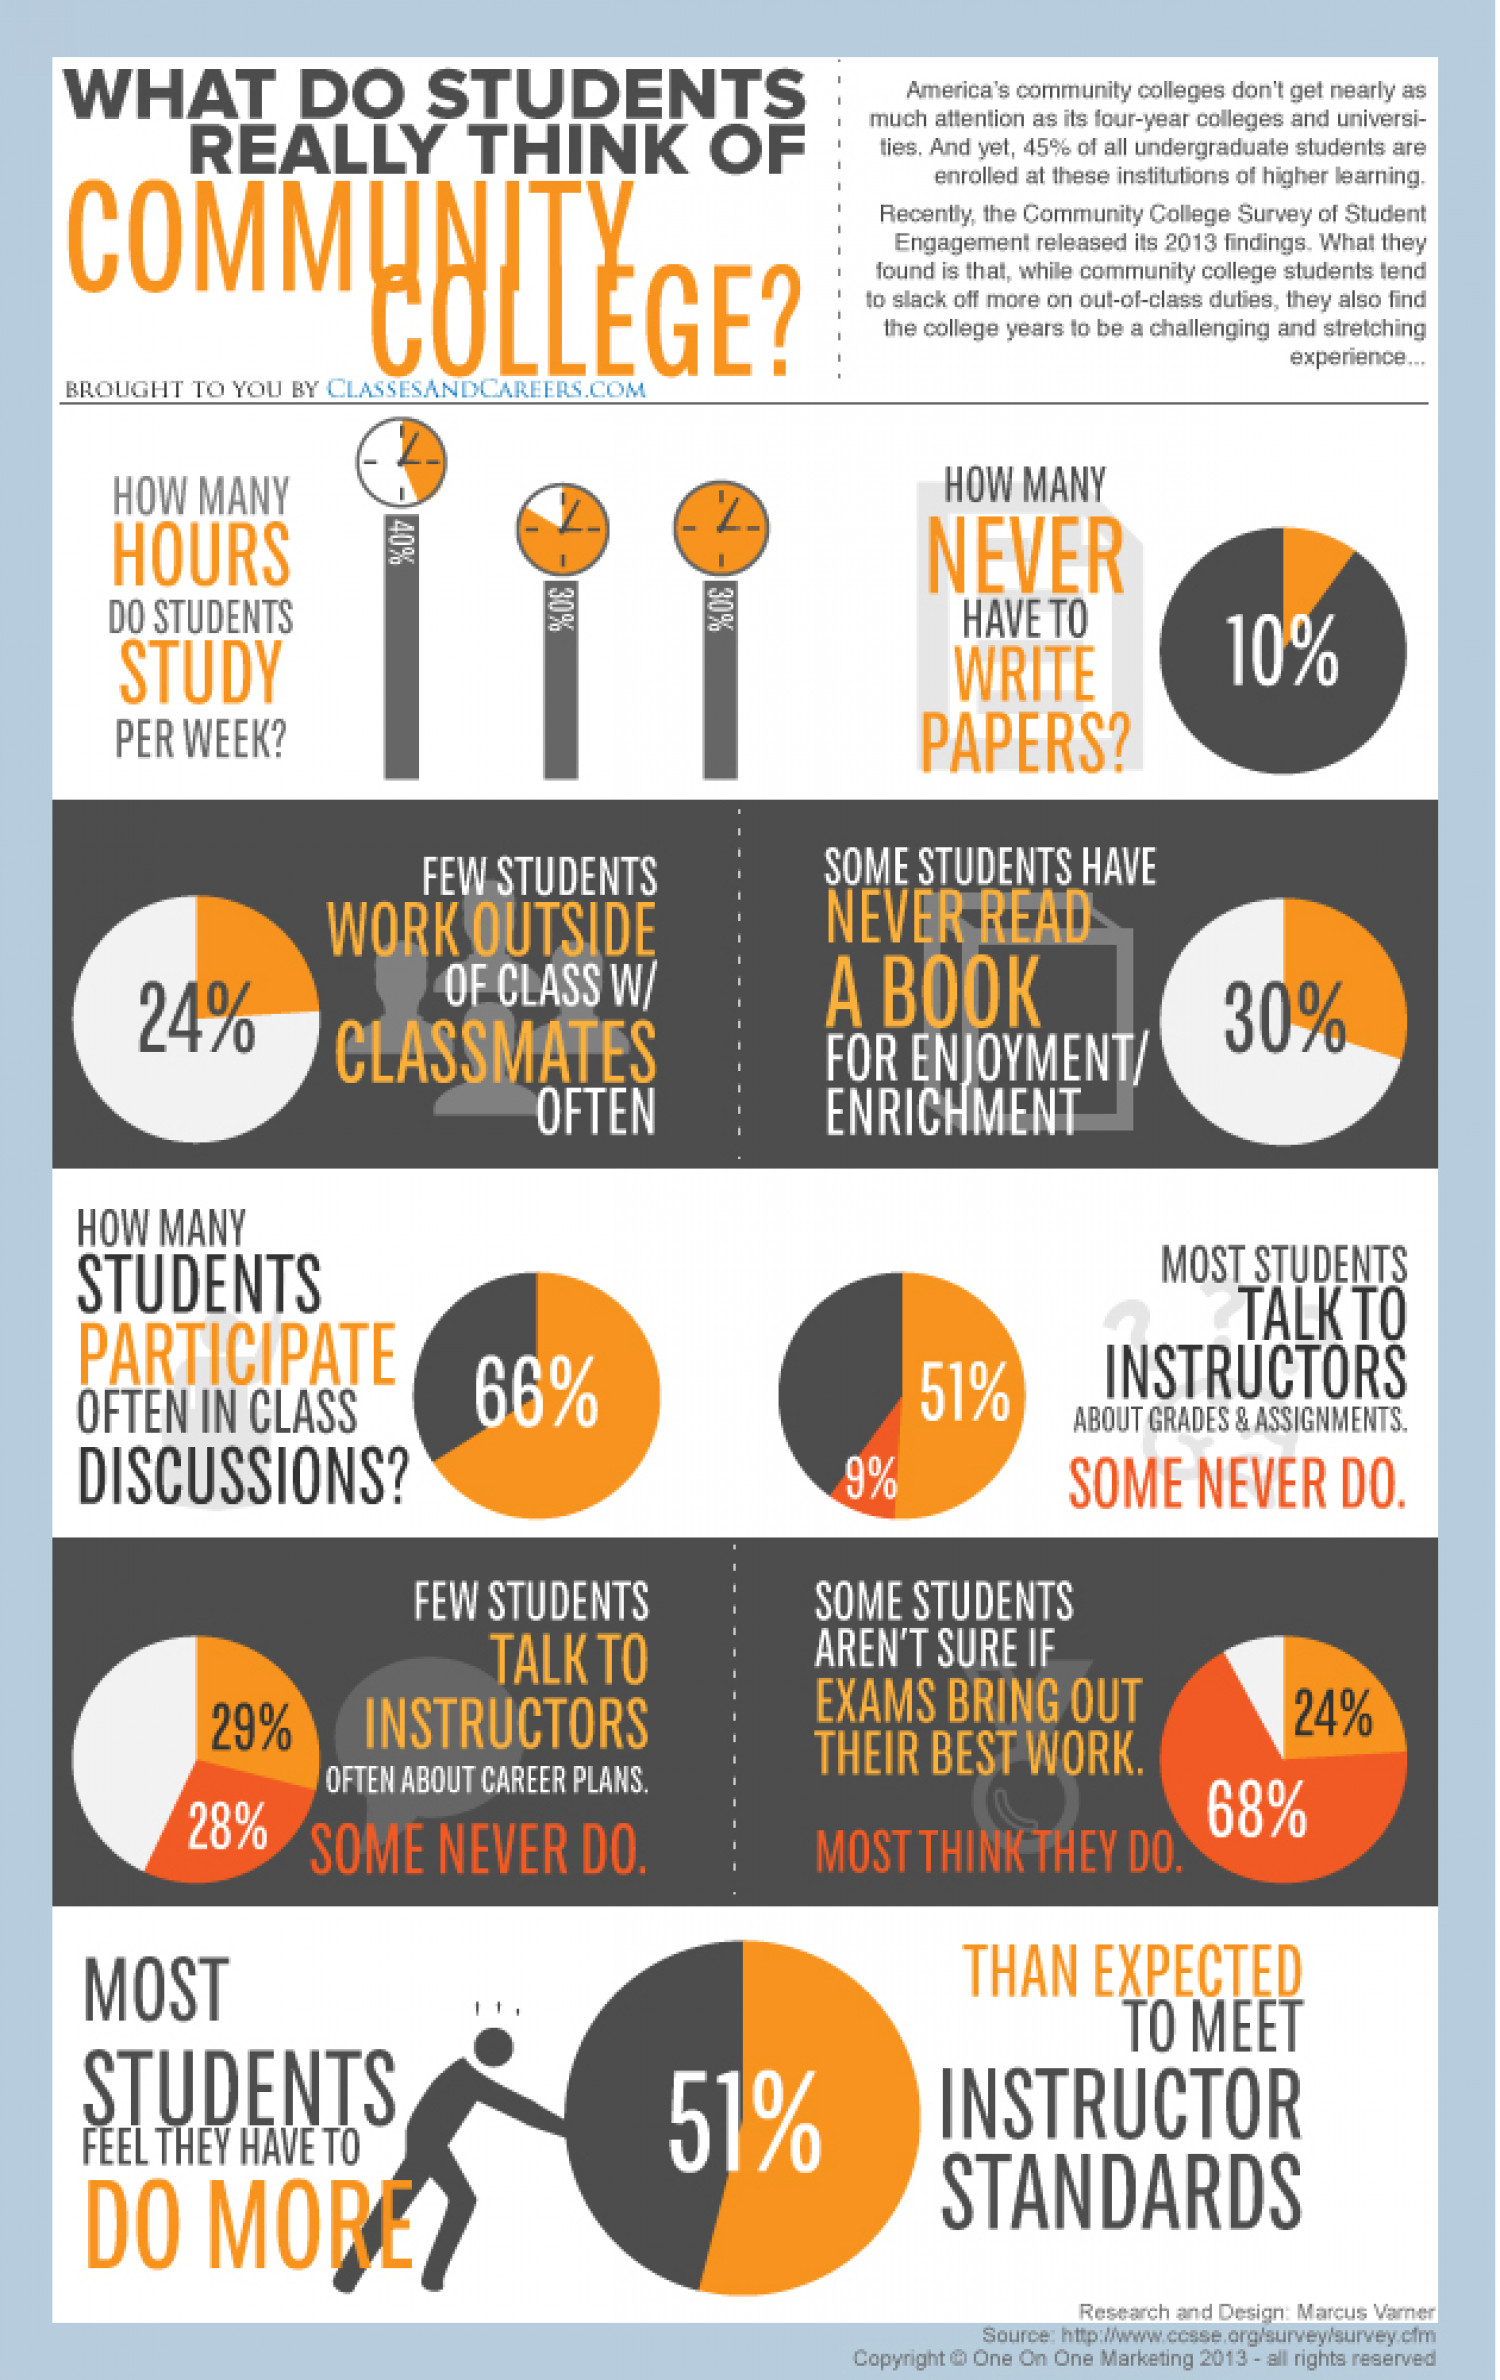 What Do Students Really Think of Community College Infographic